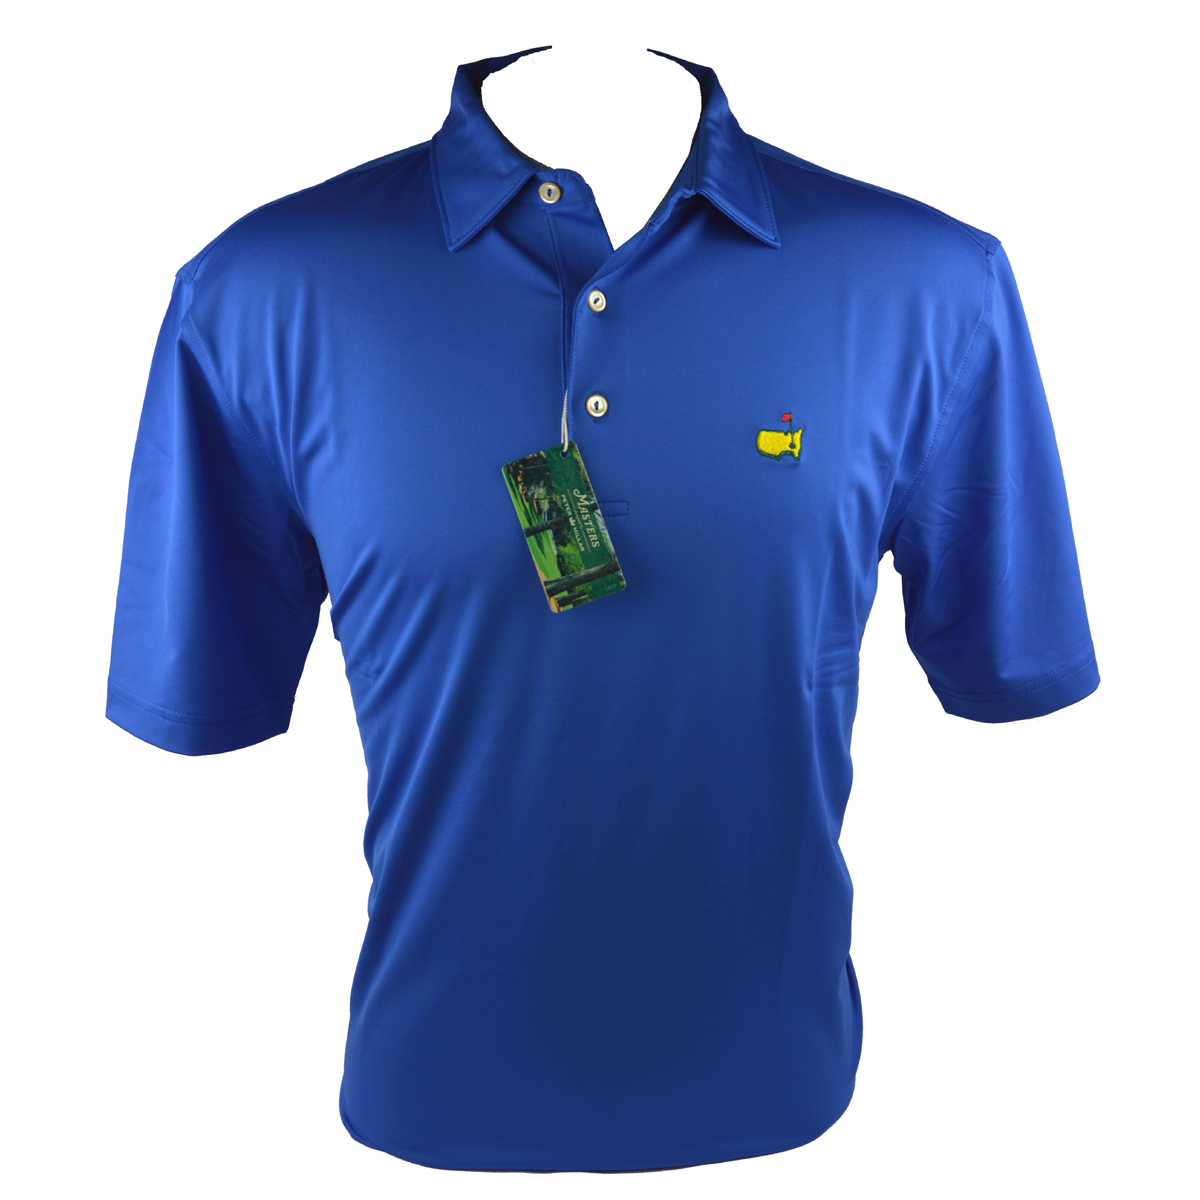 Millar performshirt blue size med only clearance for Peter millar women s golf shirts